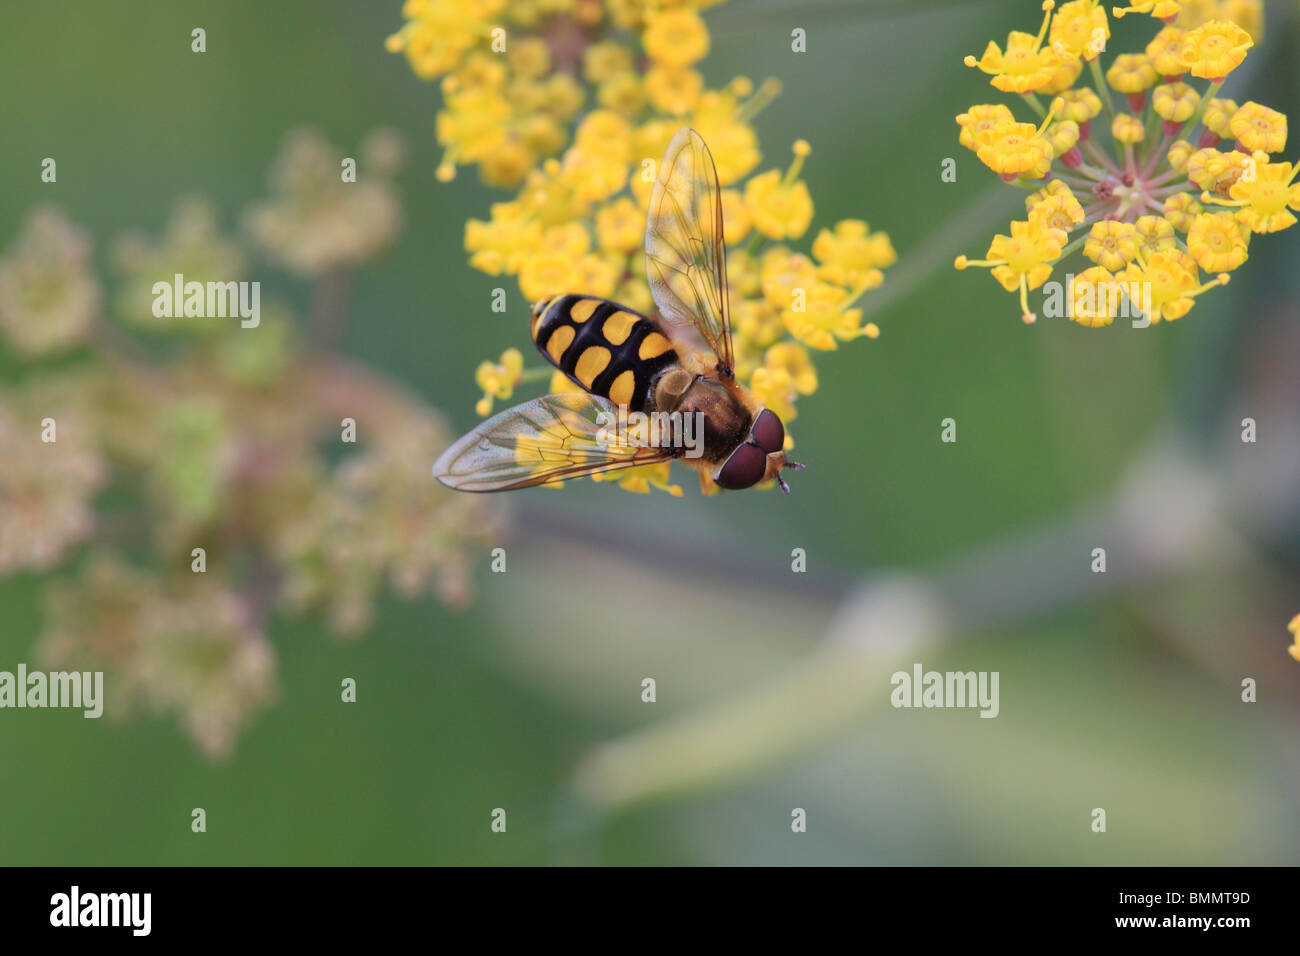 HOVERFLY (Chrysotoxum spp.) FEEDING ON FLOWER - Stock Image